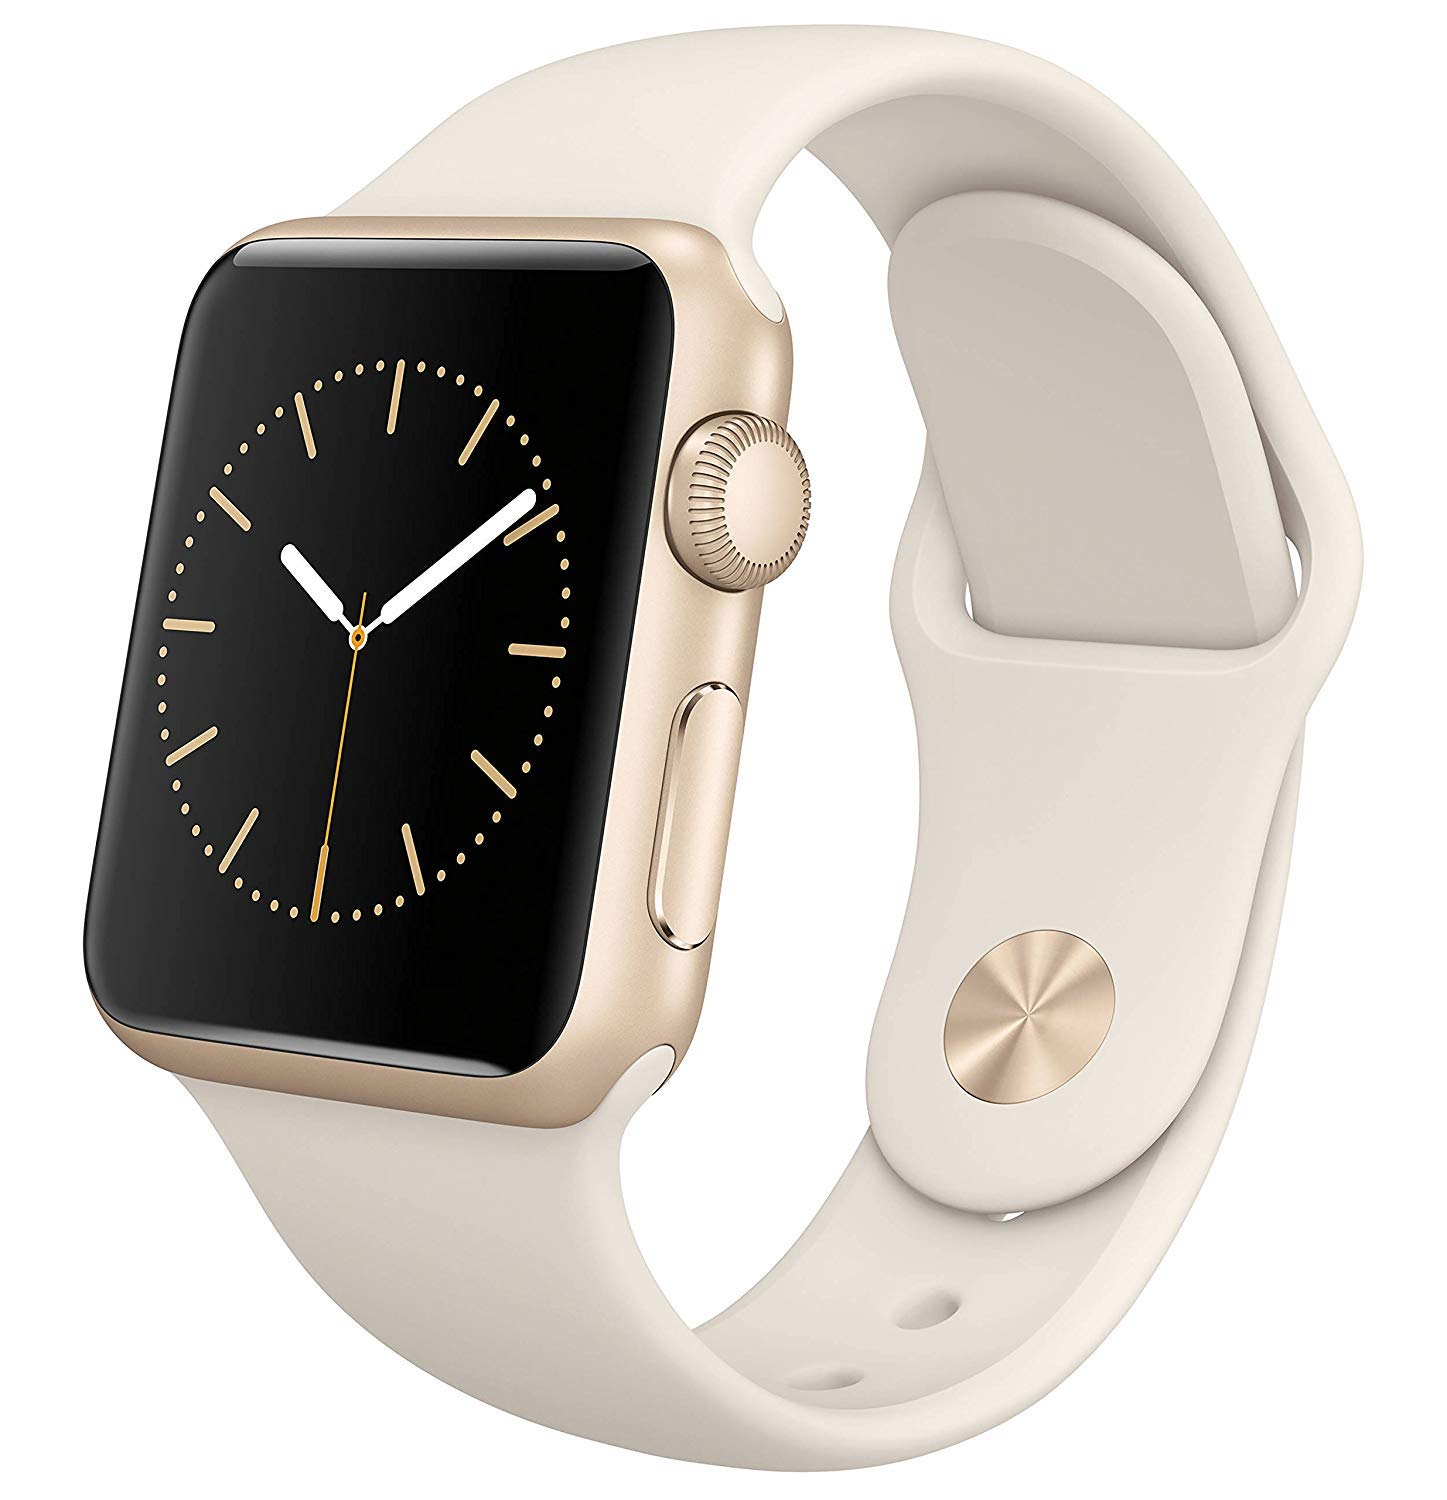 Apple Watch Series 1 Smartwatch 38mm Gold Aluminum Case, White Sport Band (Renewed) by Apple (Image #1)